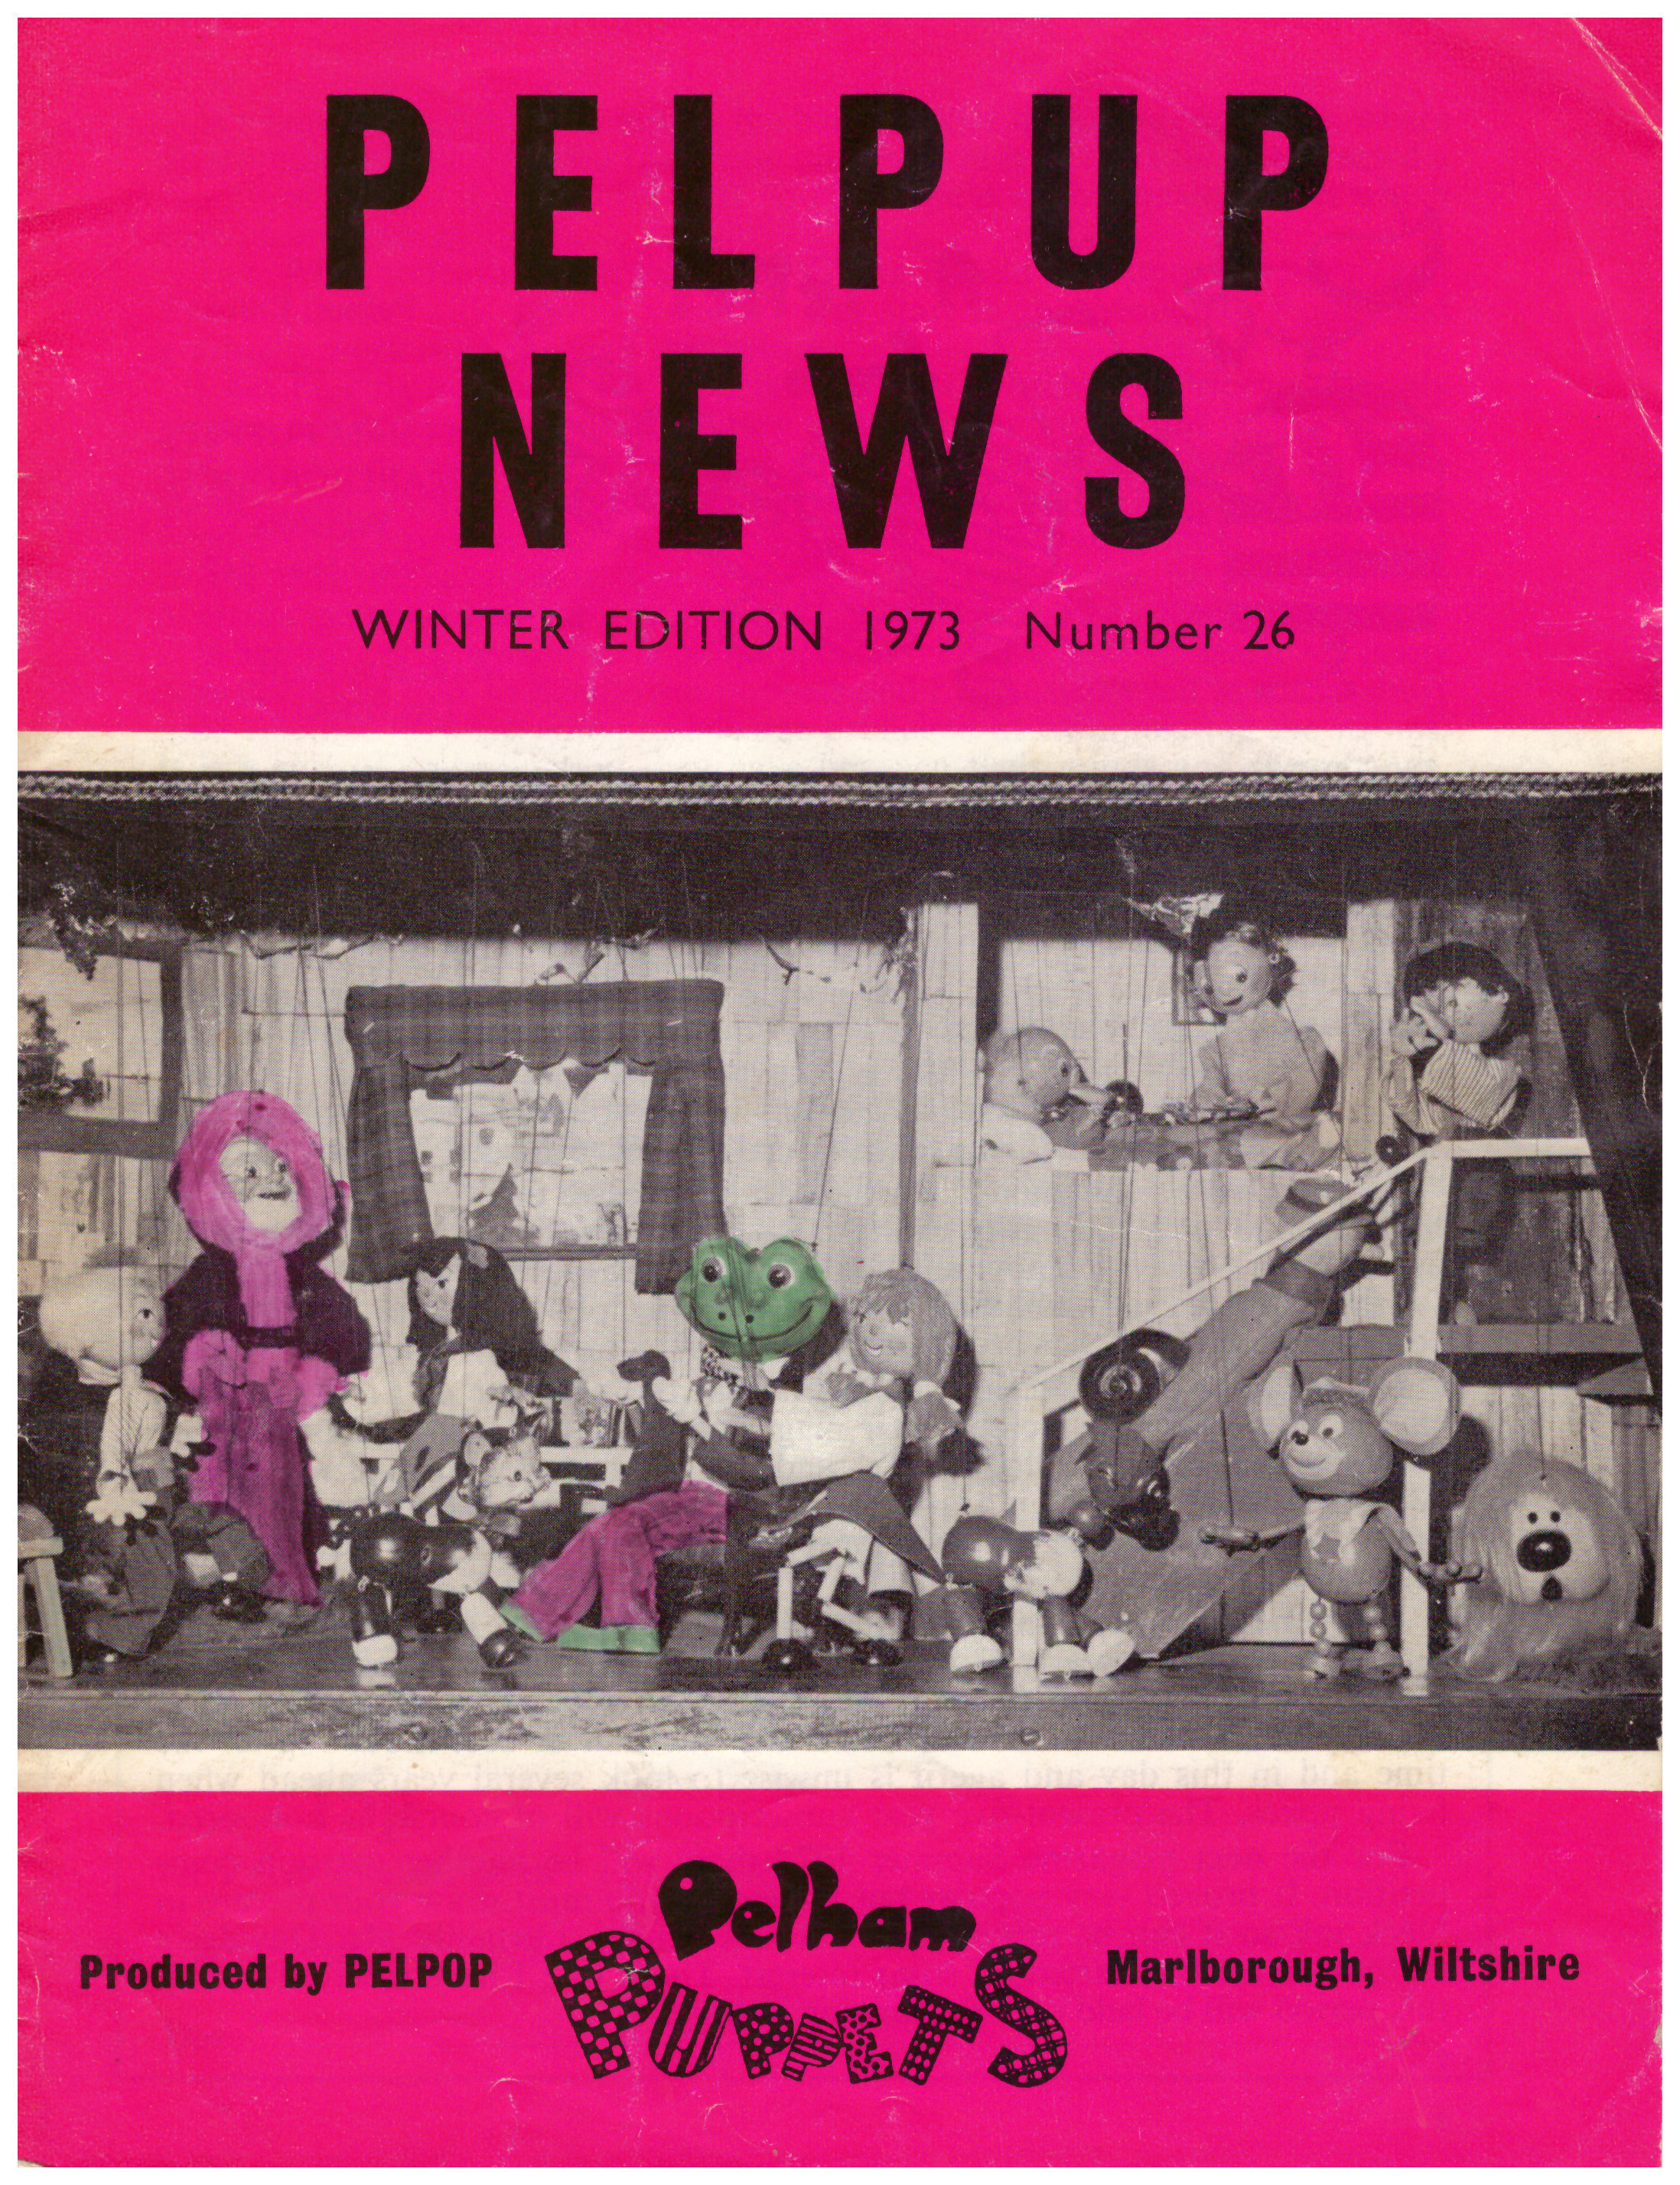 Winter Edition 1973 Number 26